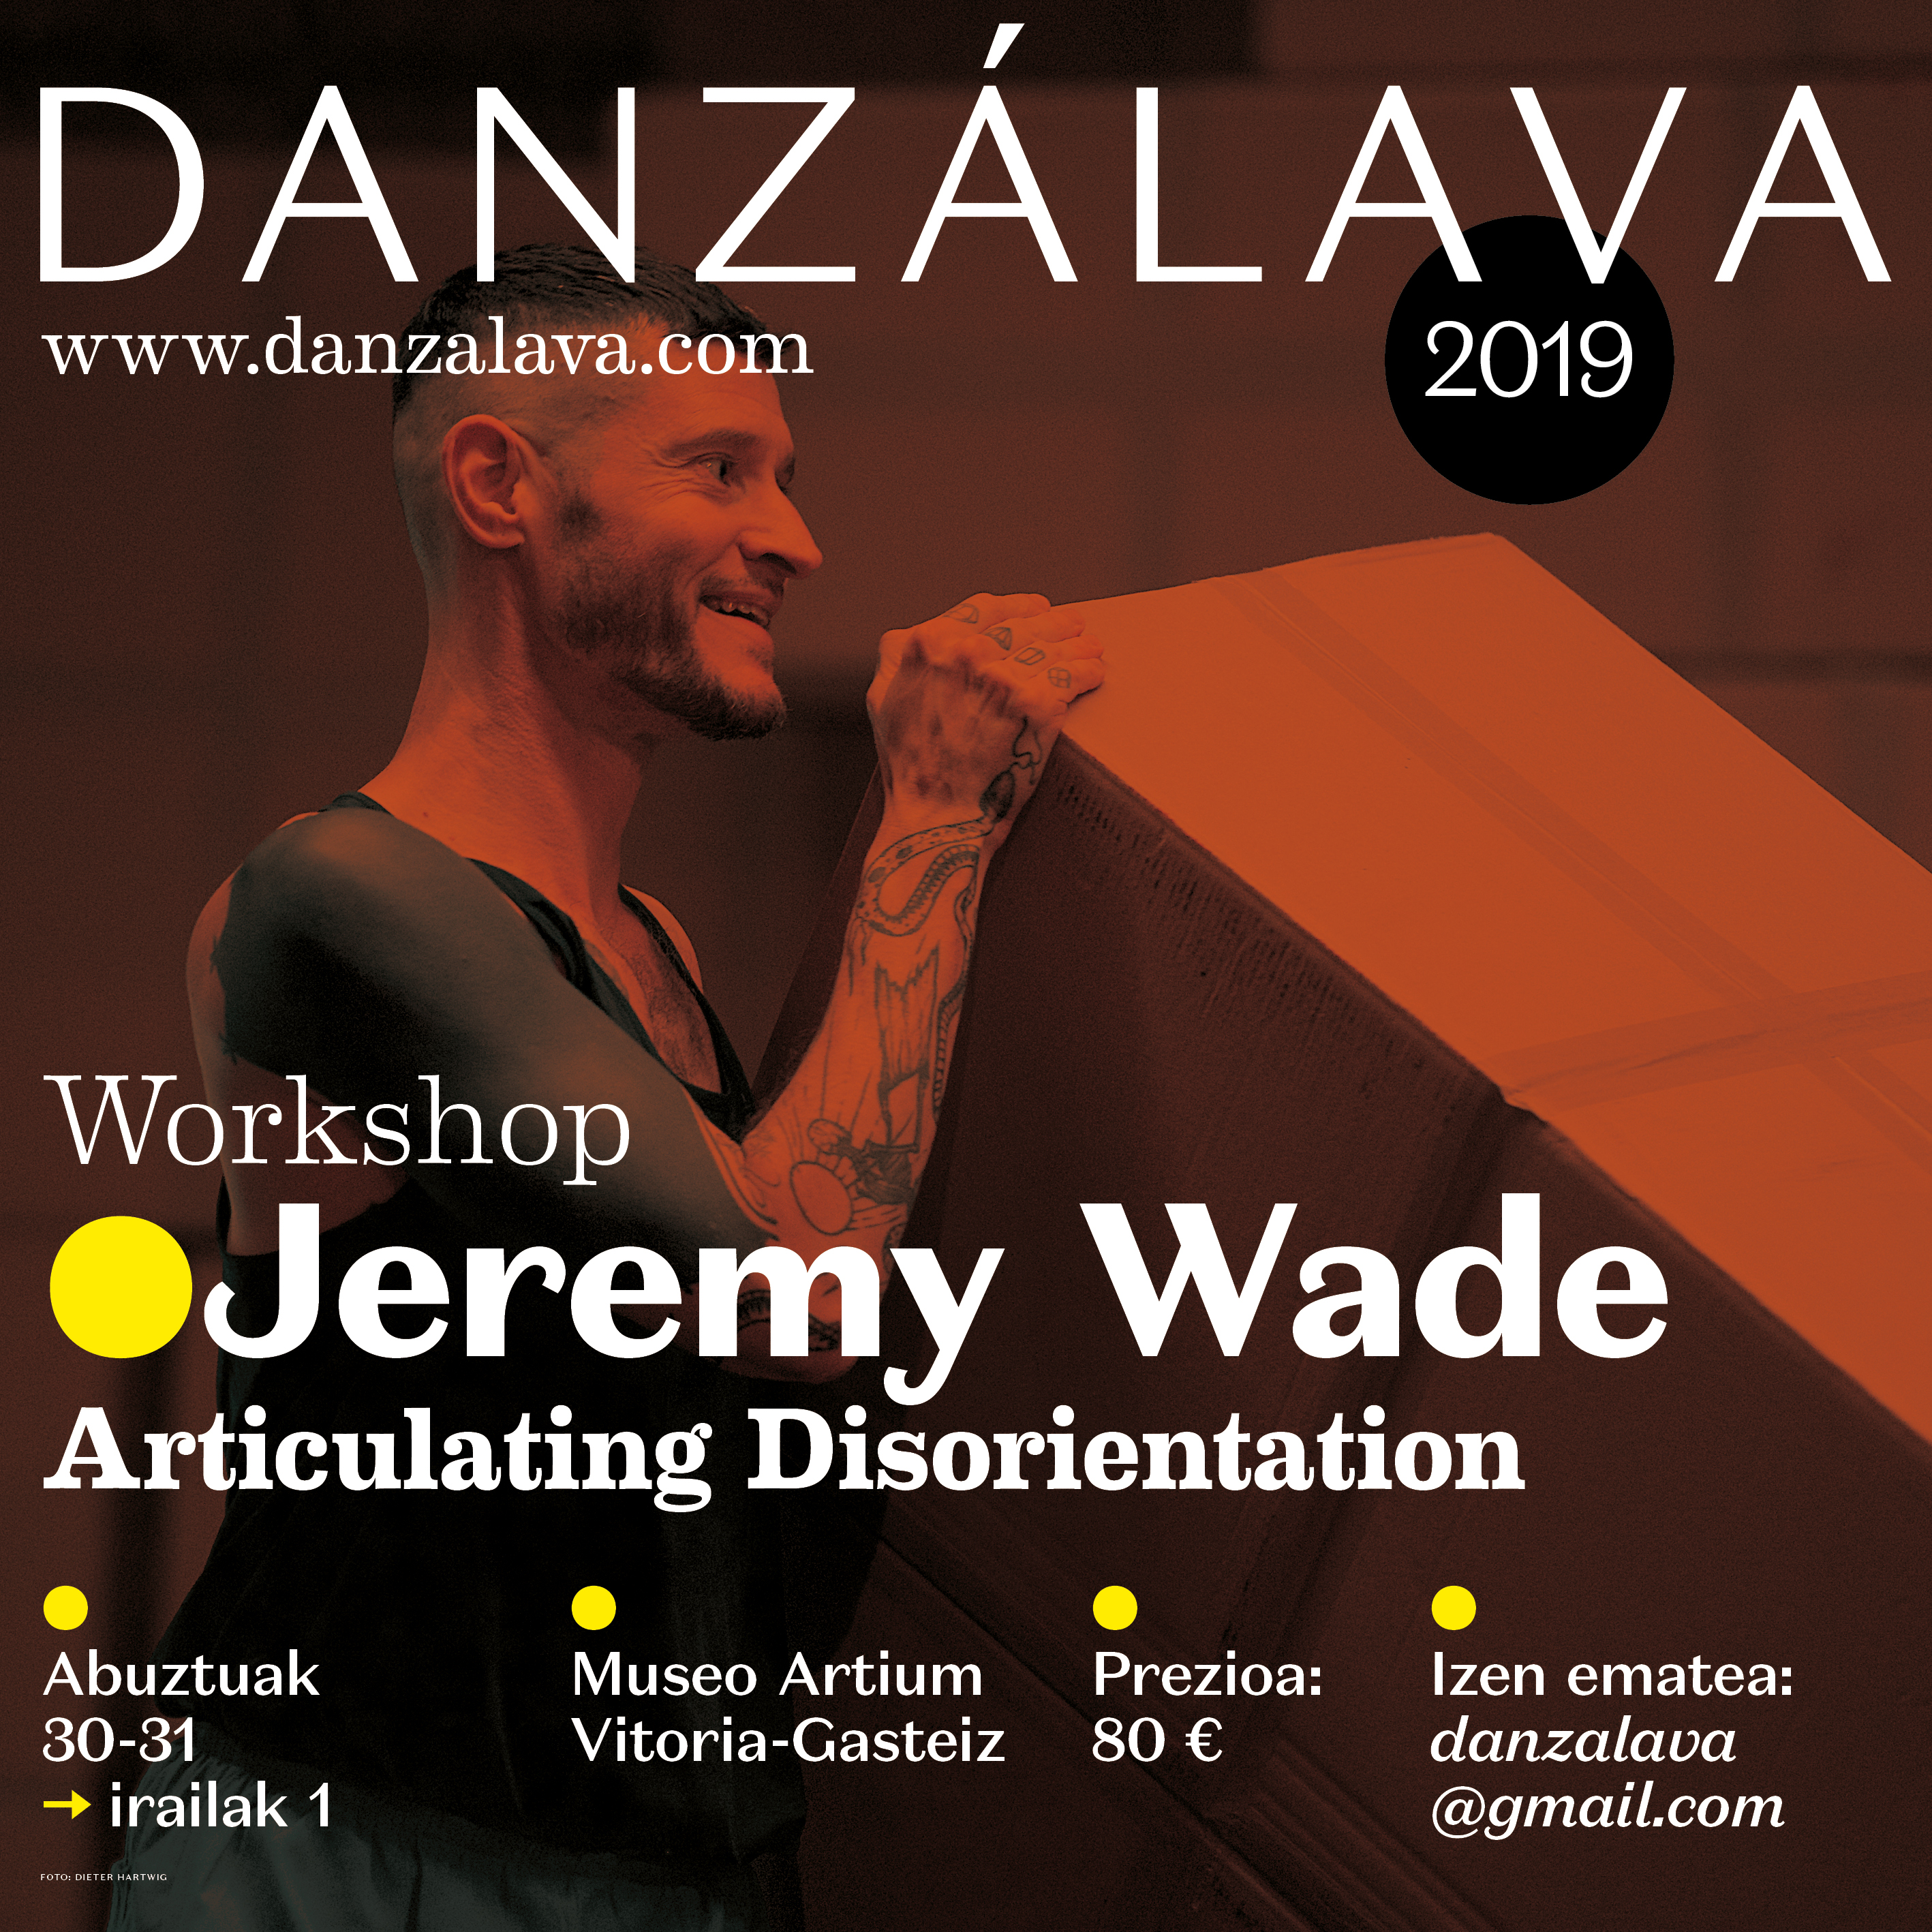 DANZALAVA2019_JEREMYWADE_workshop_digital_EUS